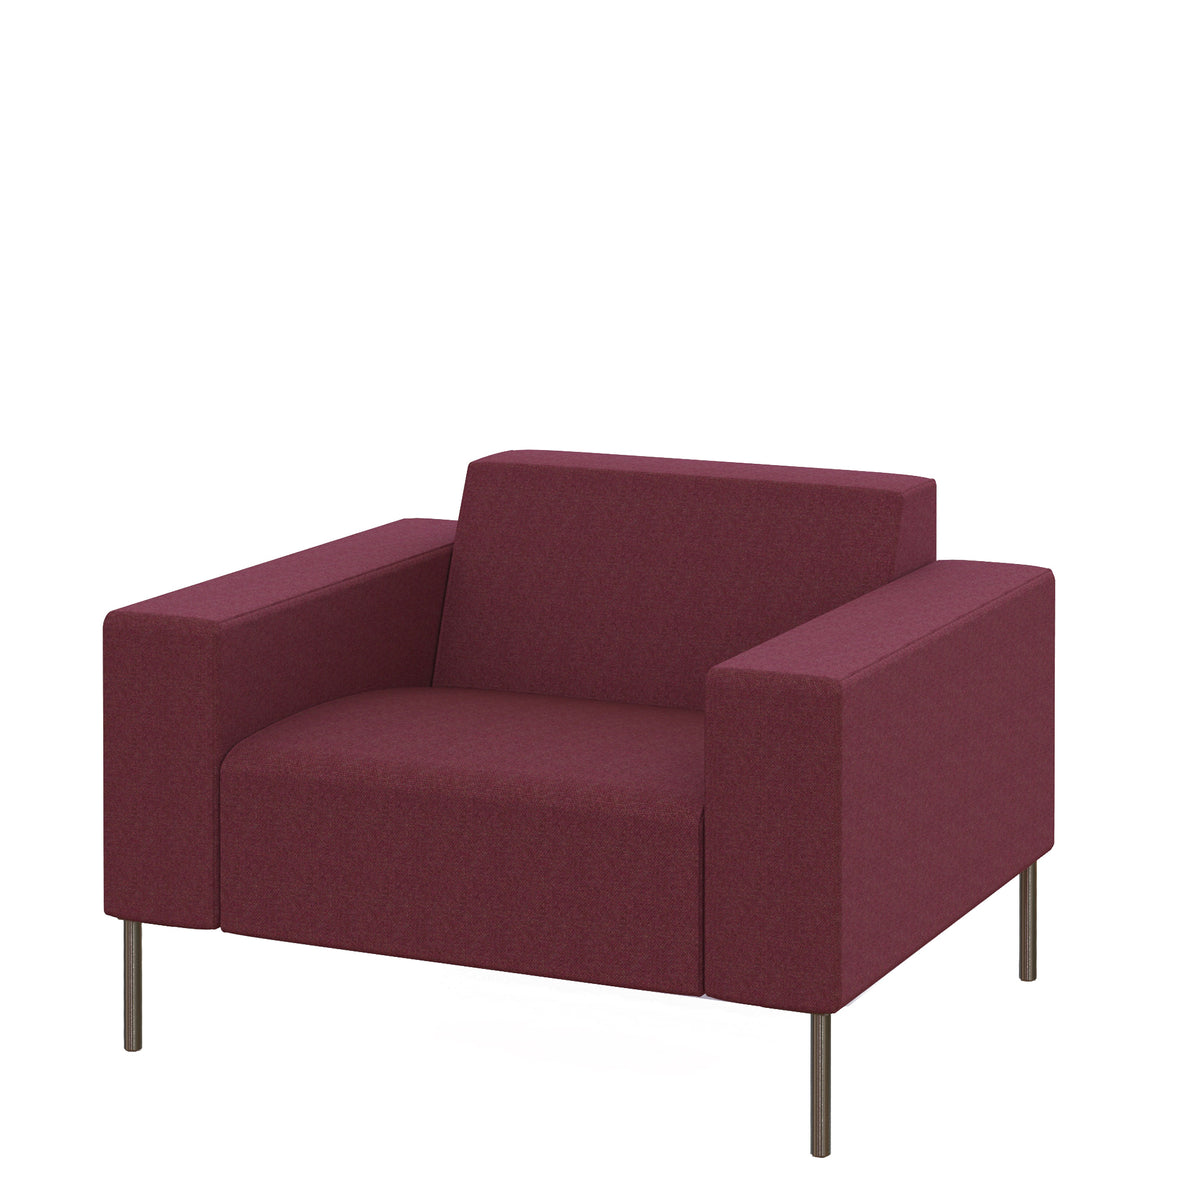 Hitch Mylius HM18 Origin Armchair Brushed Stainless Steel Legs Wembley